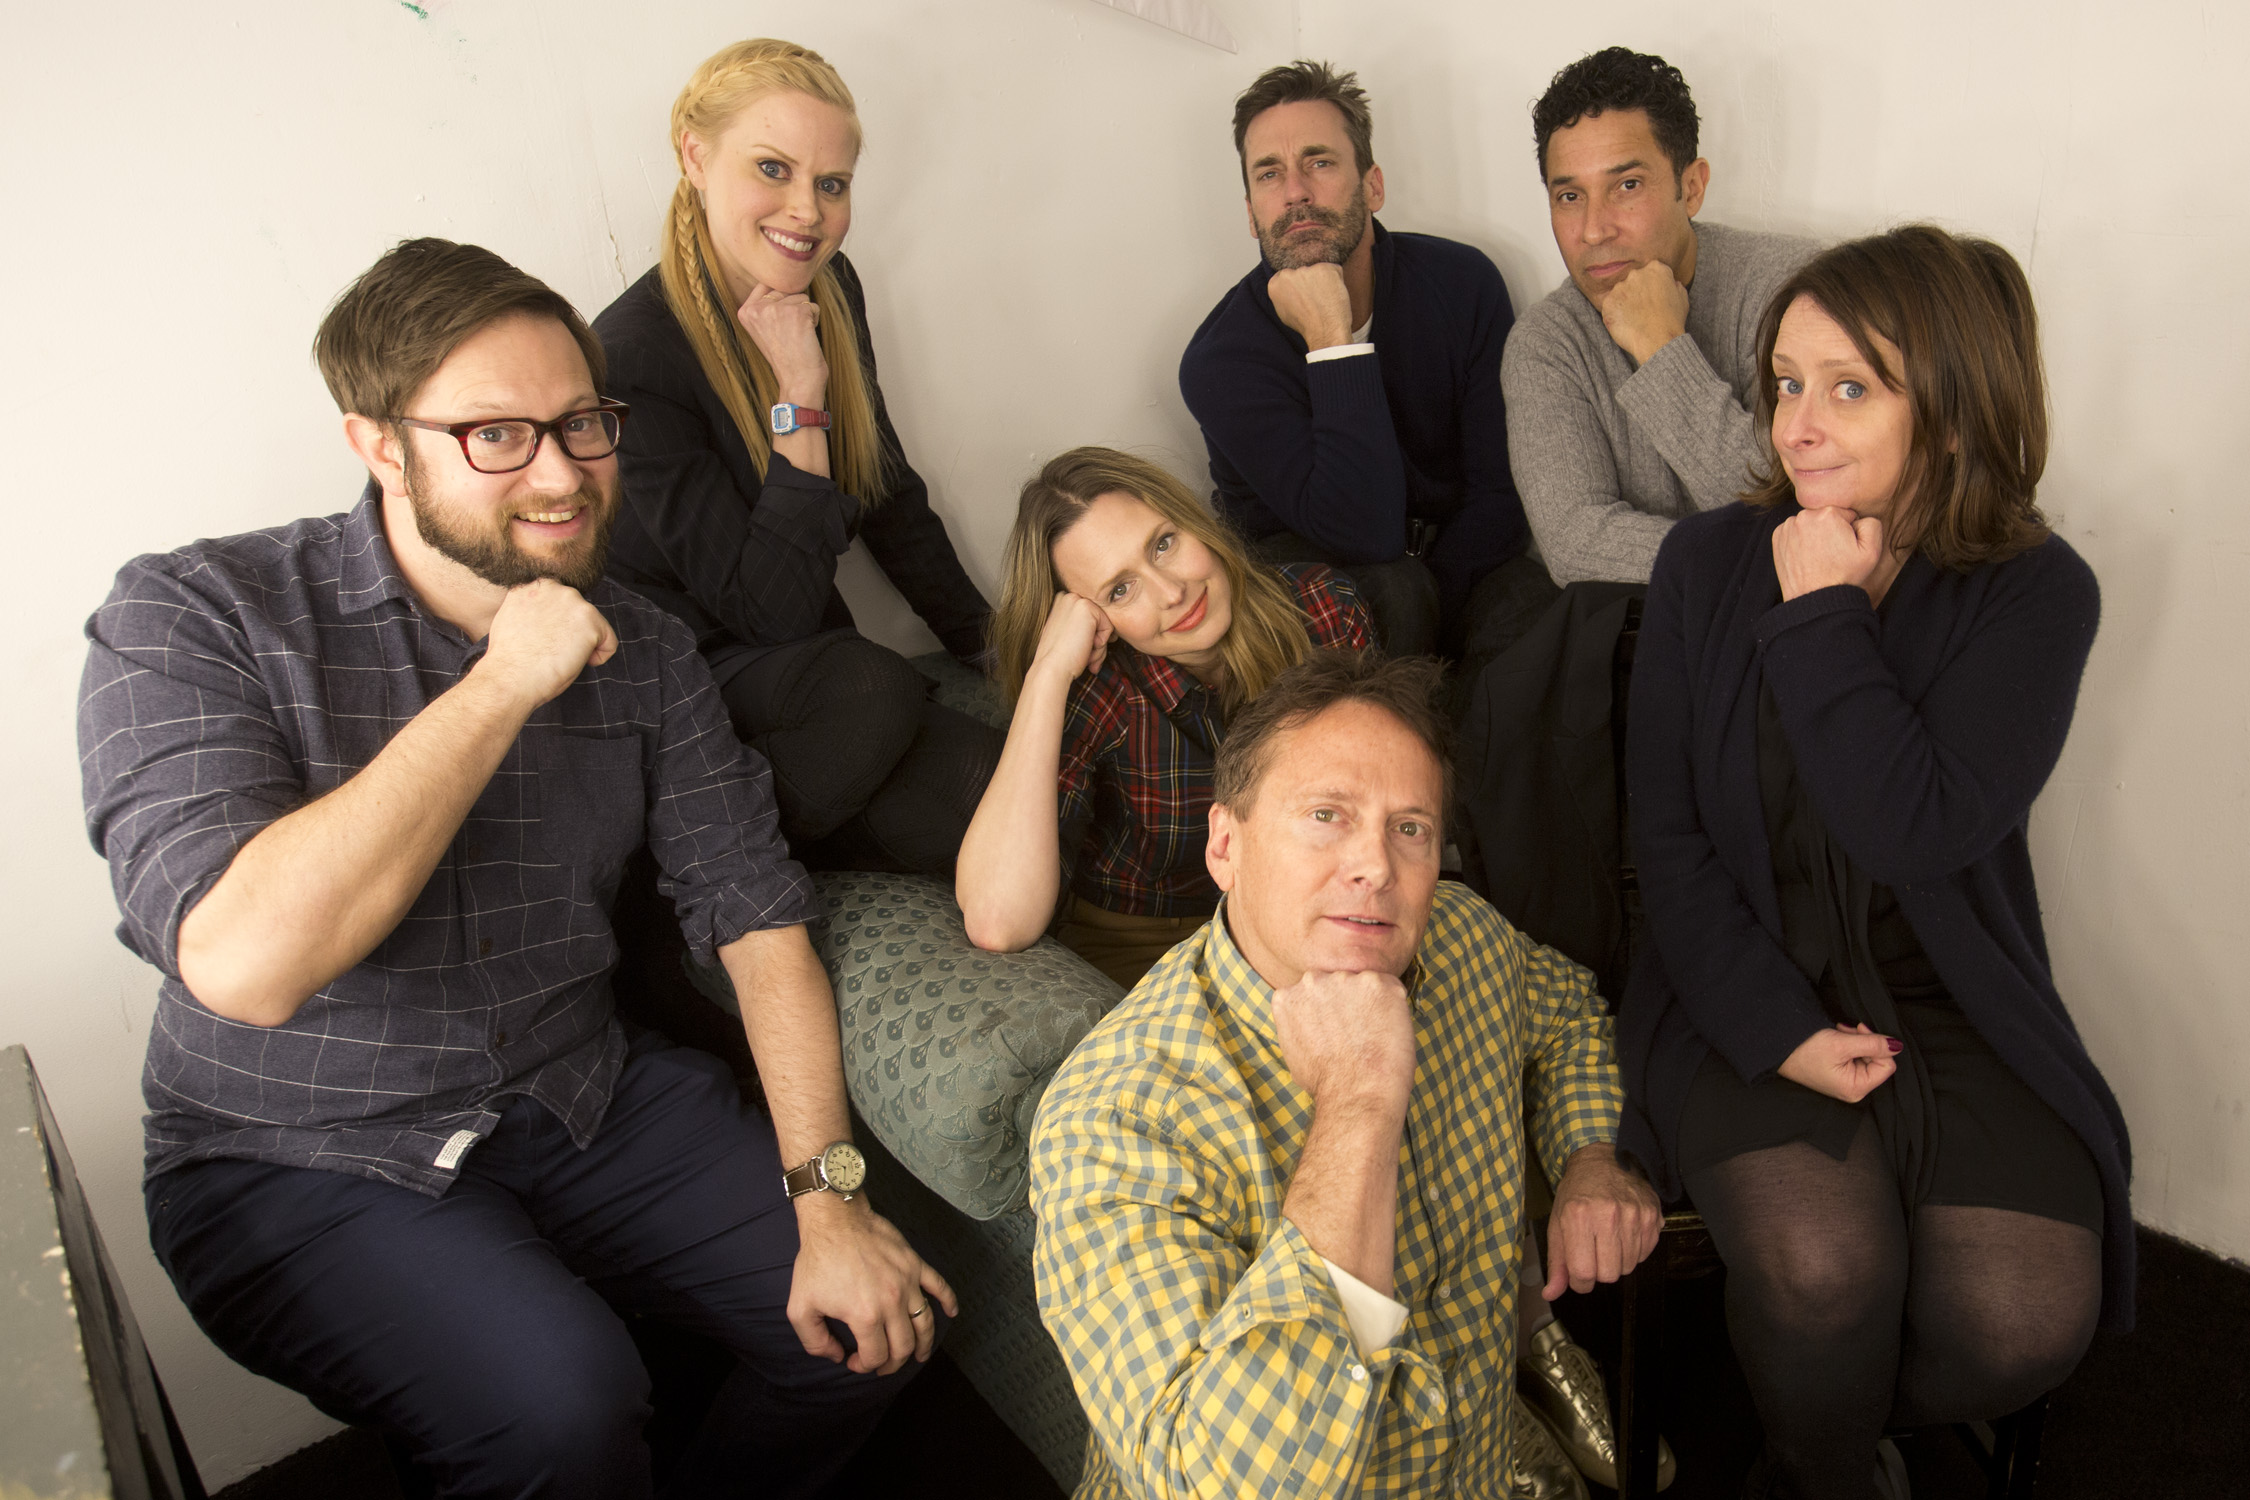 Cole Stratton, Janet Varney, Jessica Makinson, Jon Hamm, Michael Hitchcock, Oscar Nunez and Rachel Dratch at Theme Park Improv 2017 at SF Sketchfest. Photo by Tommy Lau.